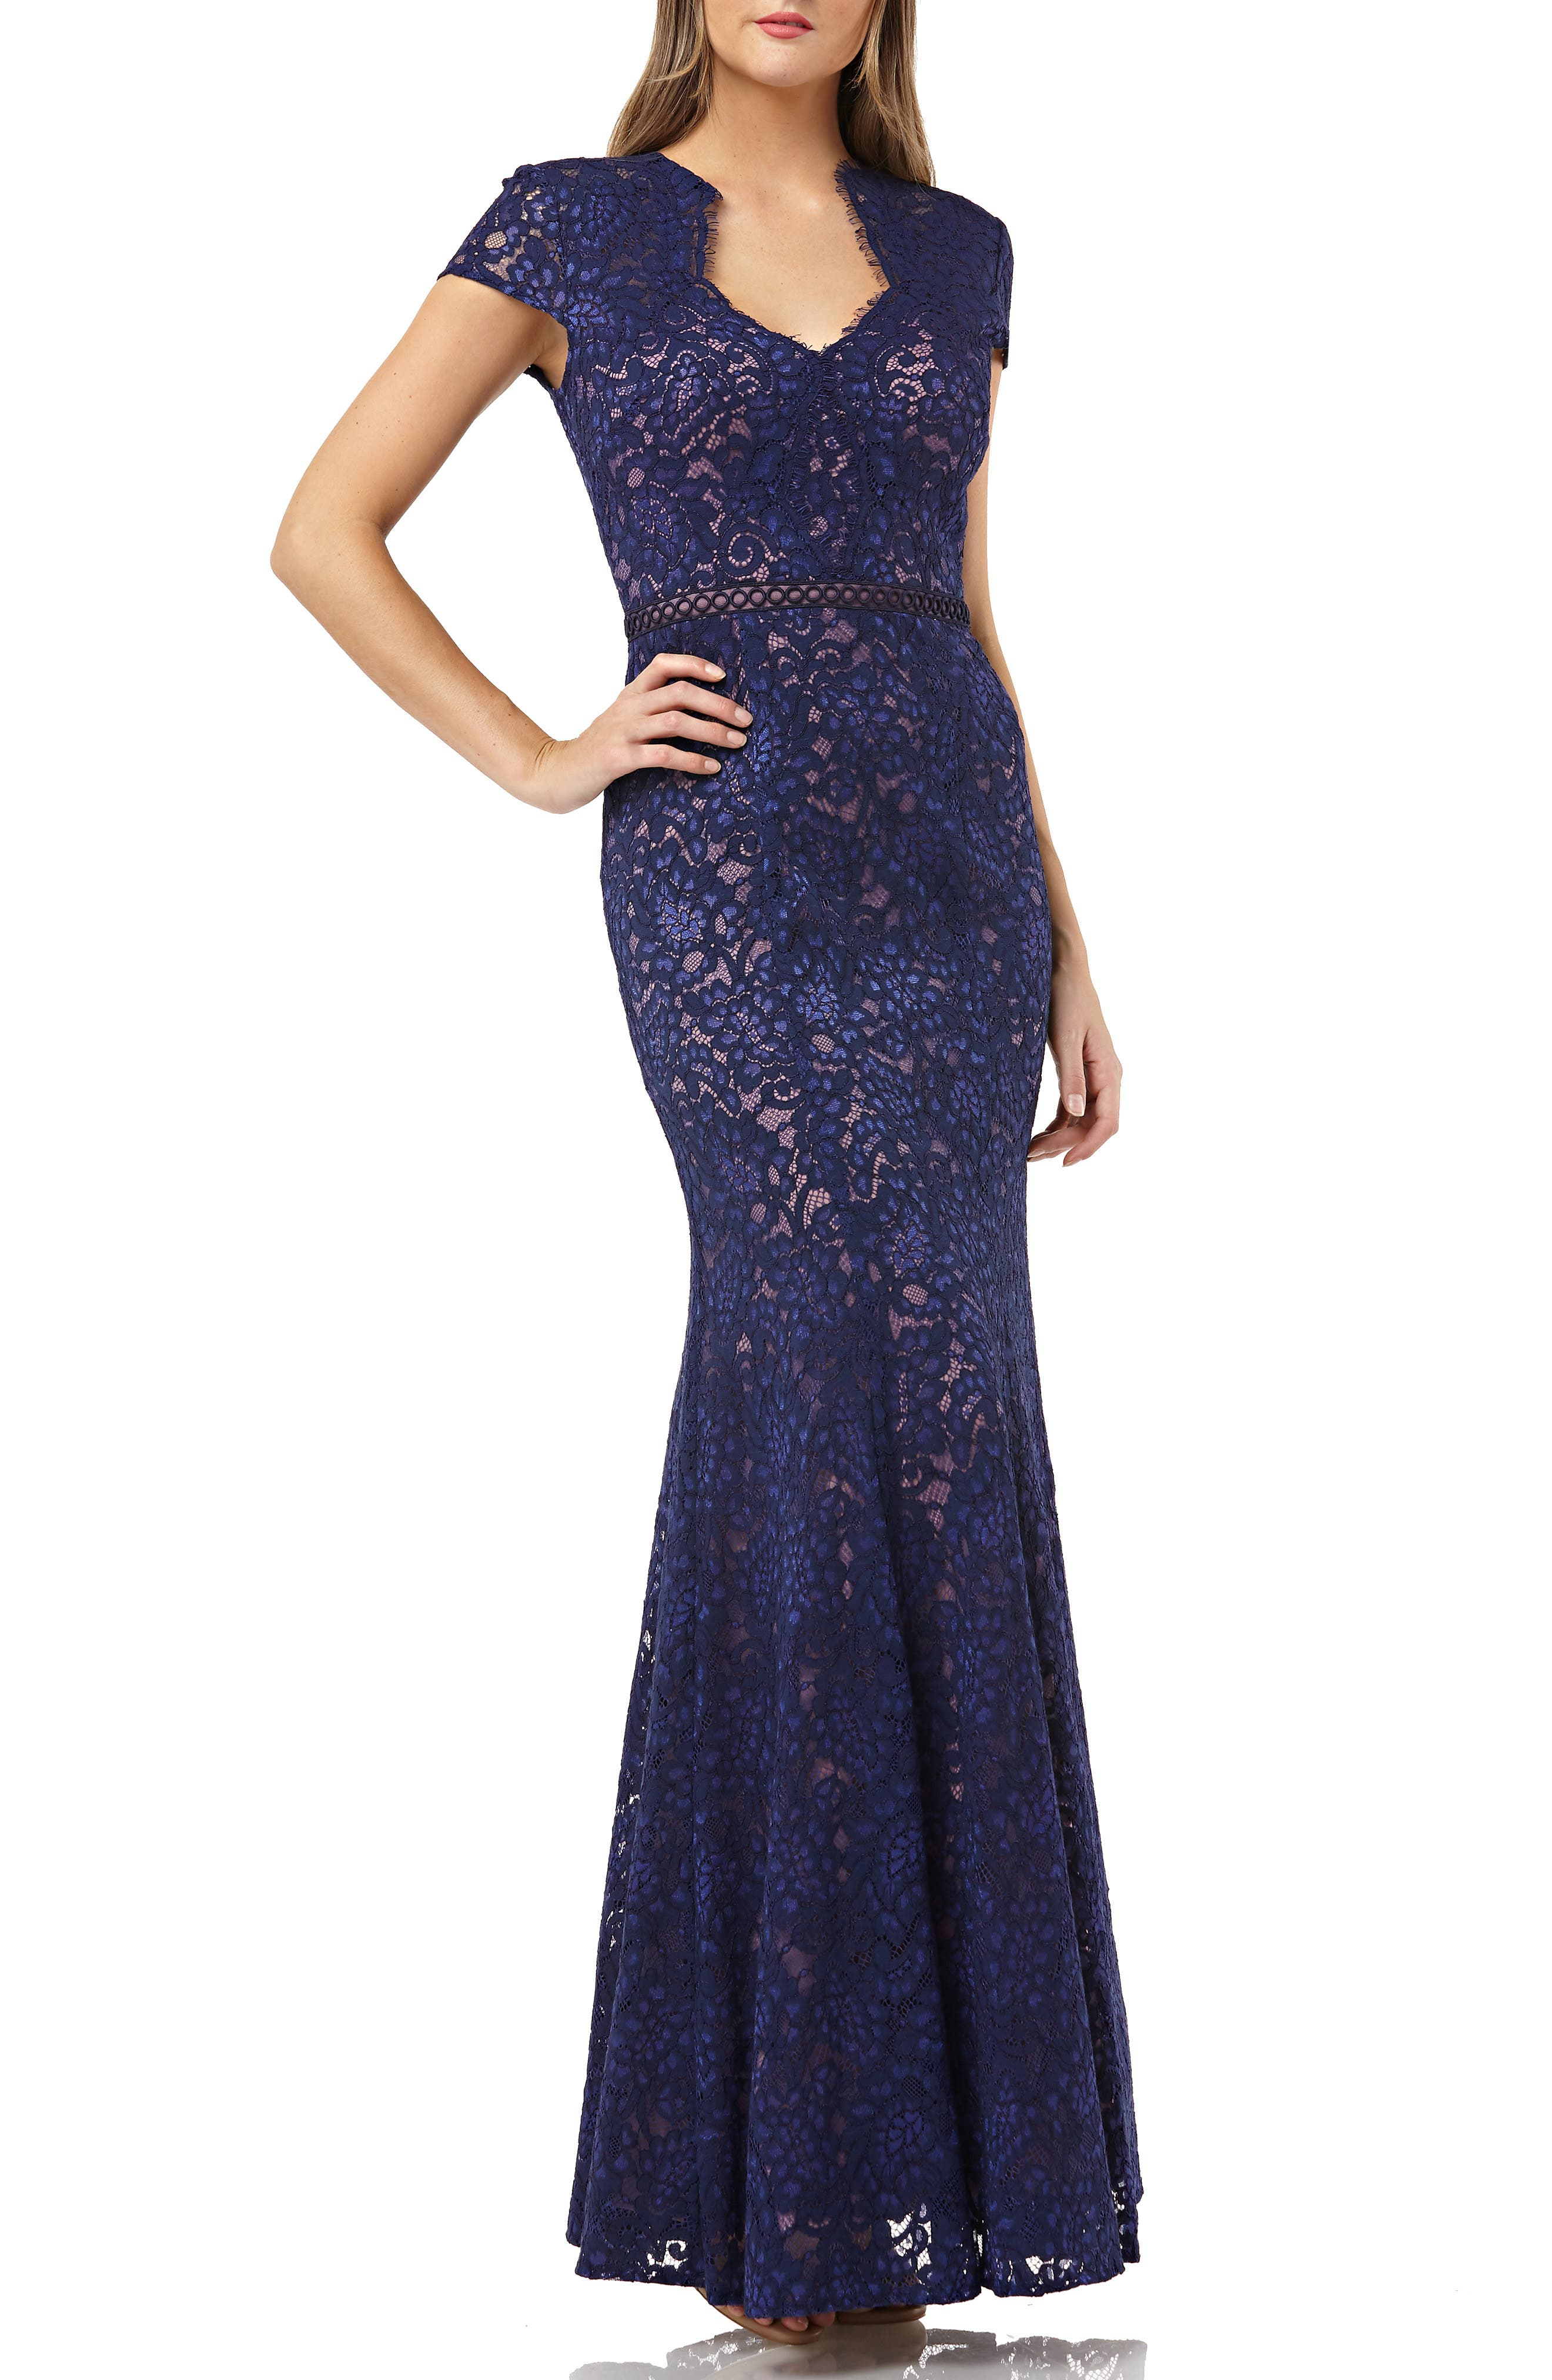 JS COLLECTIONS, Lace Mermaid Gown, Main thumbnail 1, color, NAVY/ ROSE